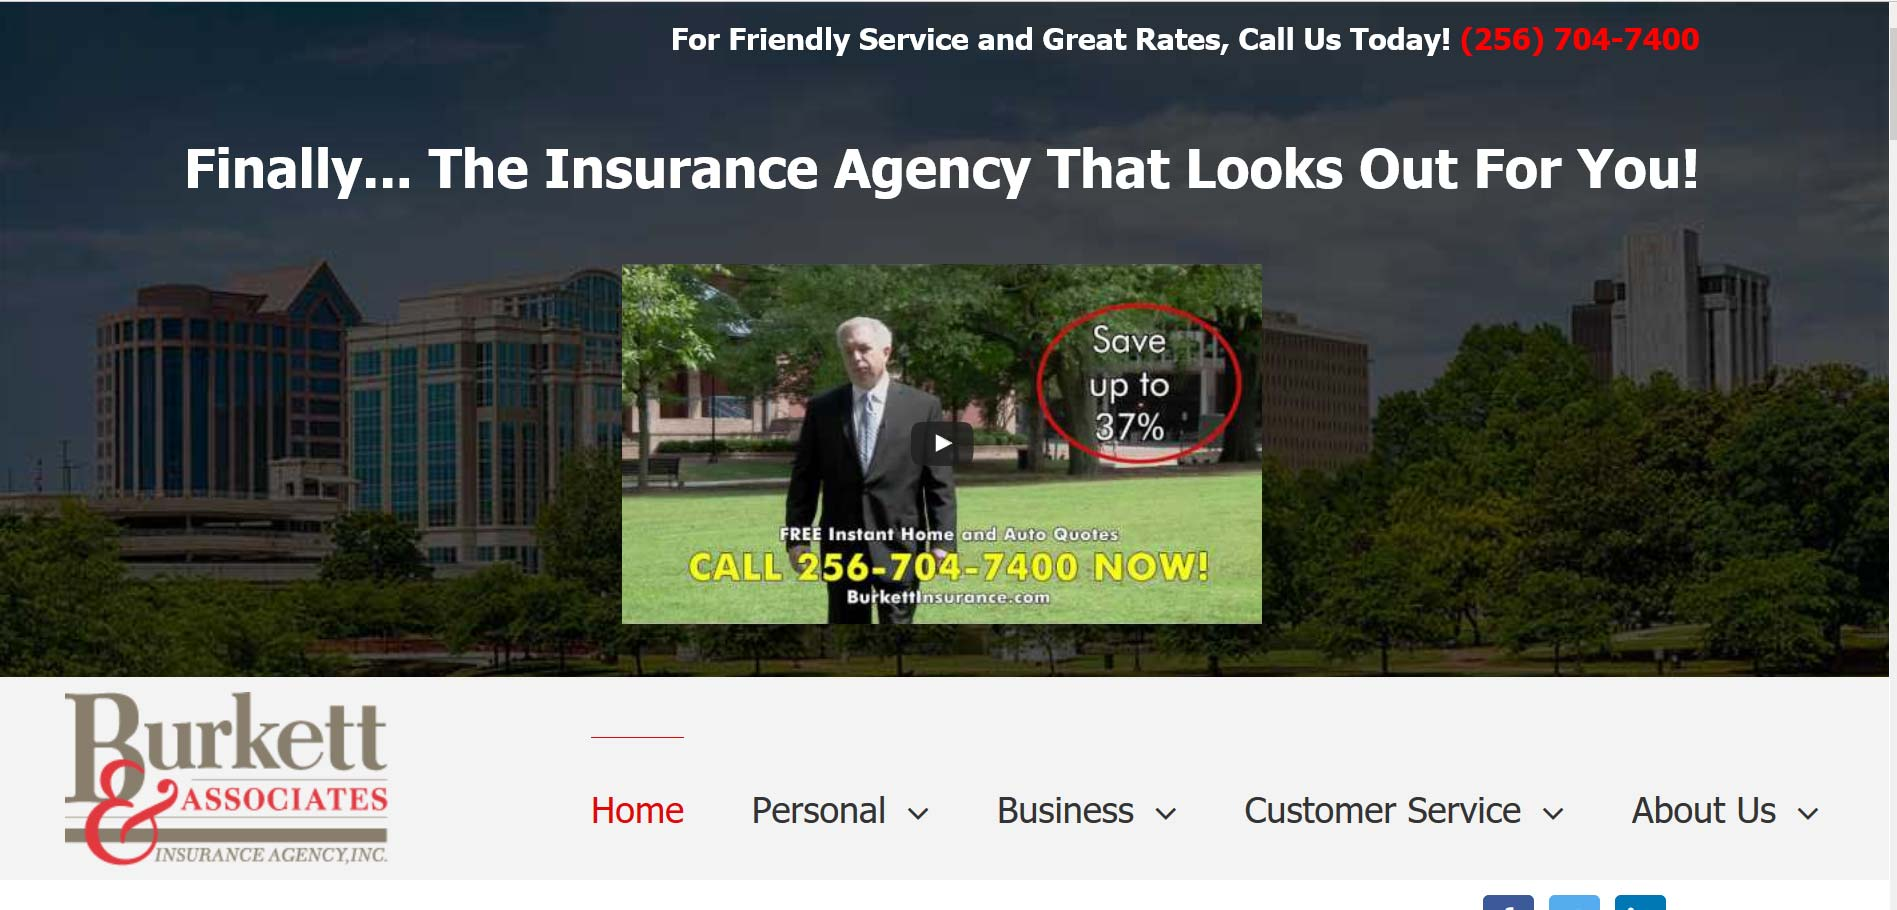 Burkett- Websites for insurance agents